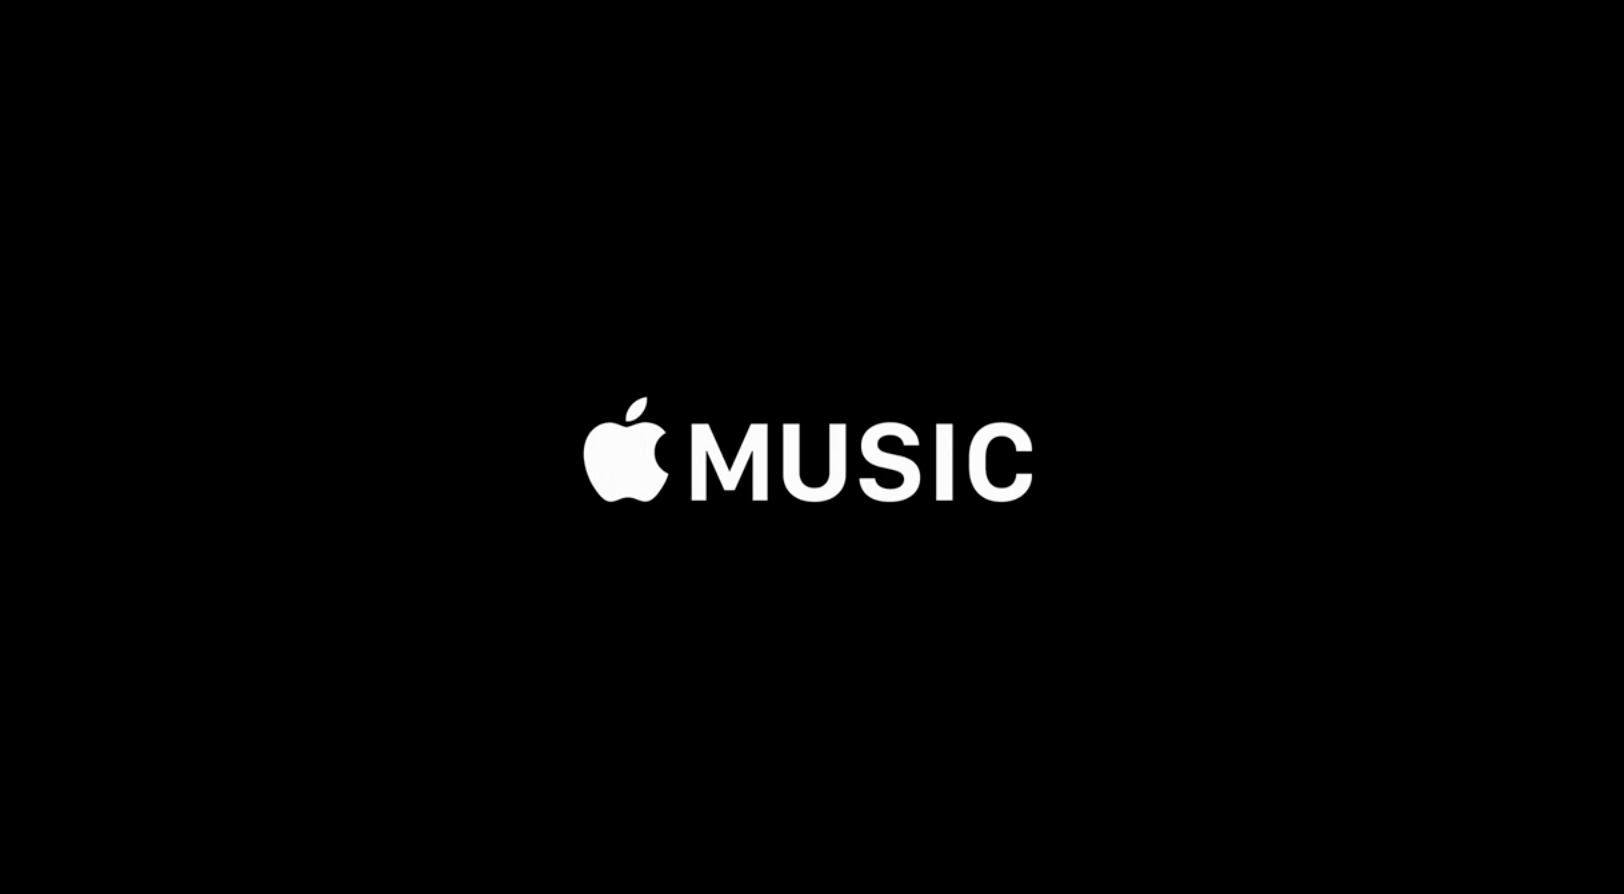 New Apple Music Streaming Service Disappoints Some Users